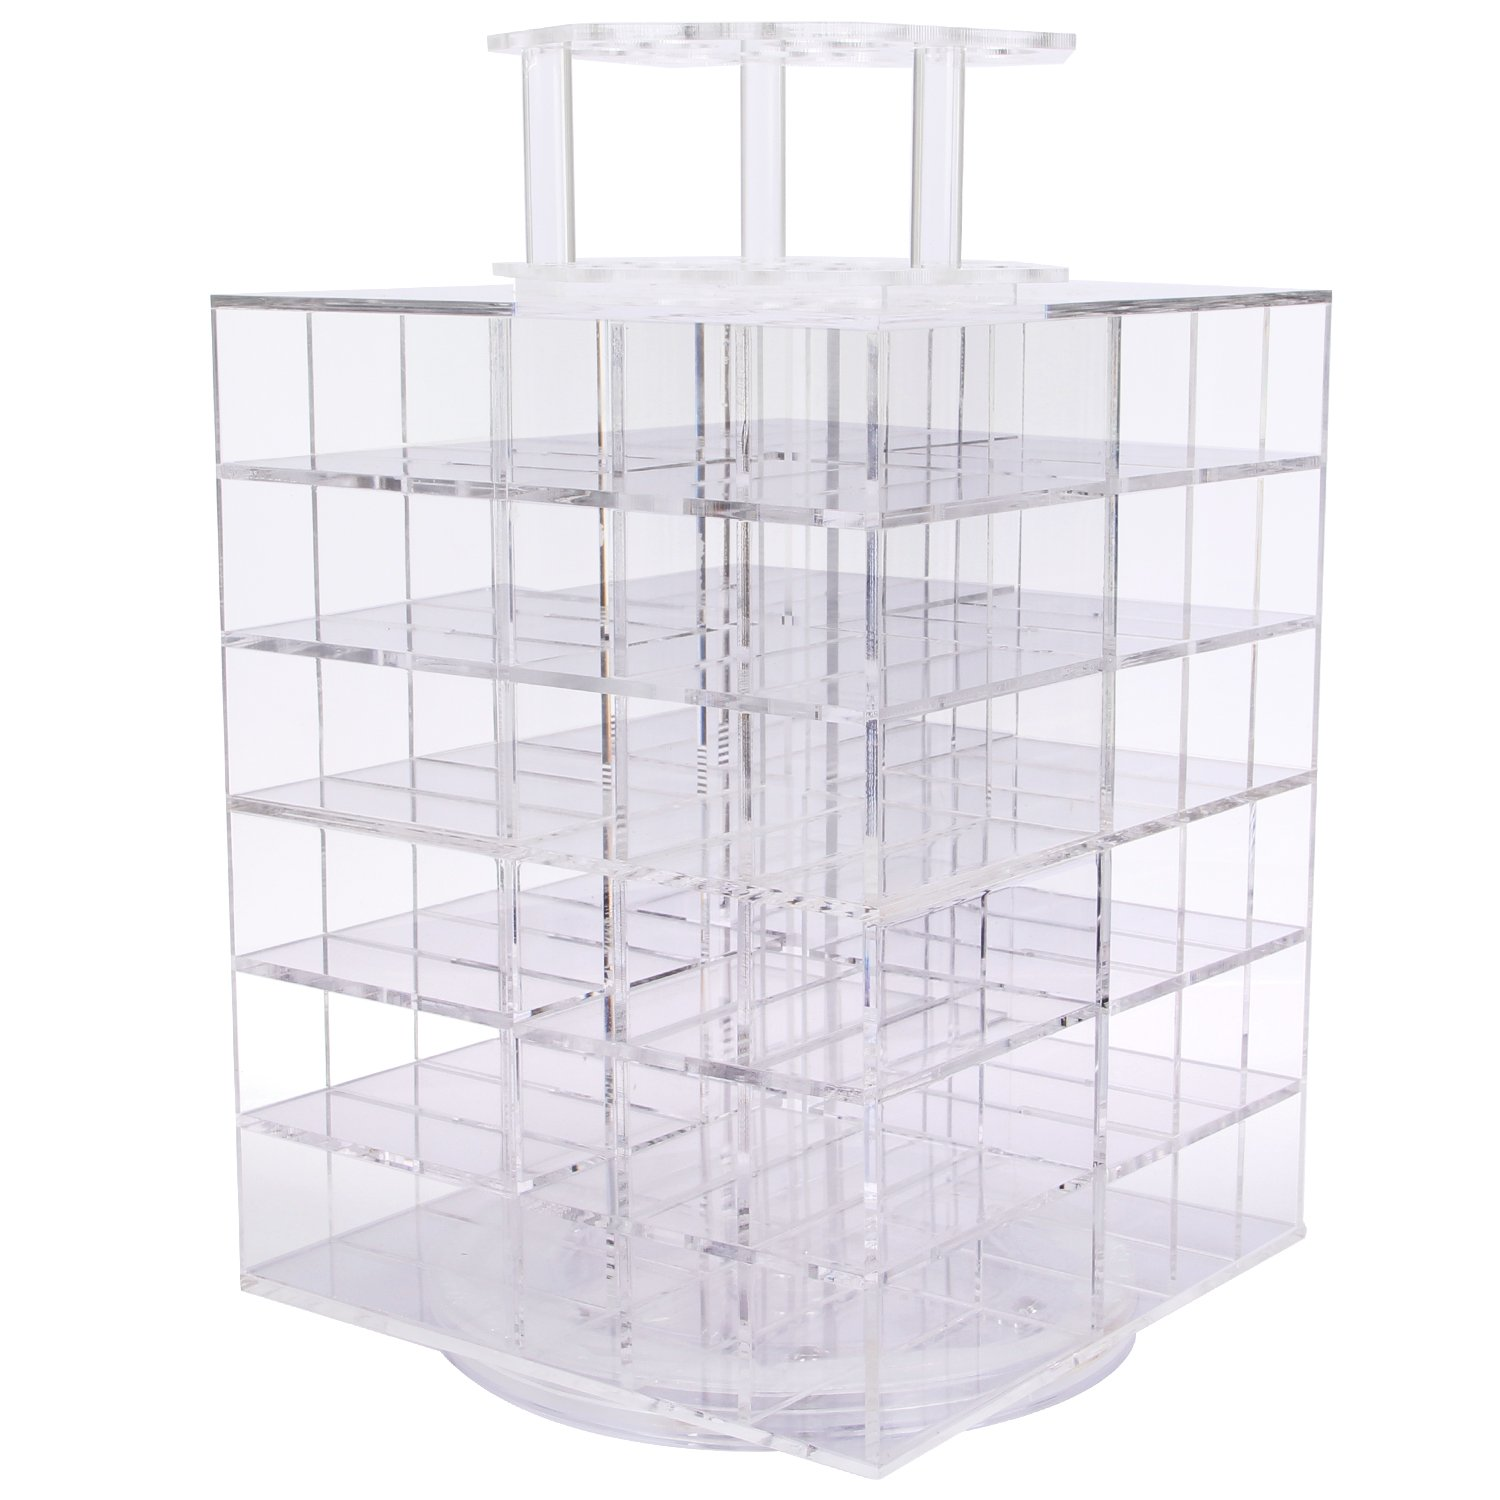 Lifewit Spinning Lipstick Tower Premium Acrylic Rotating Lipgloss Holder Makeup